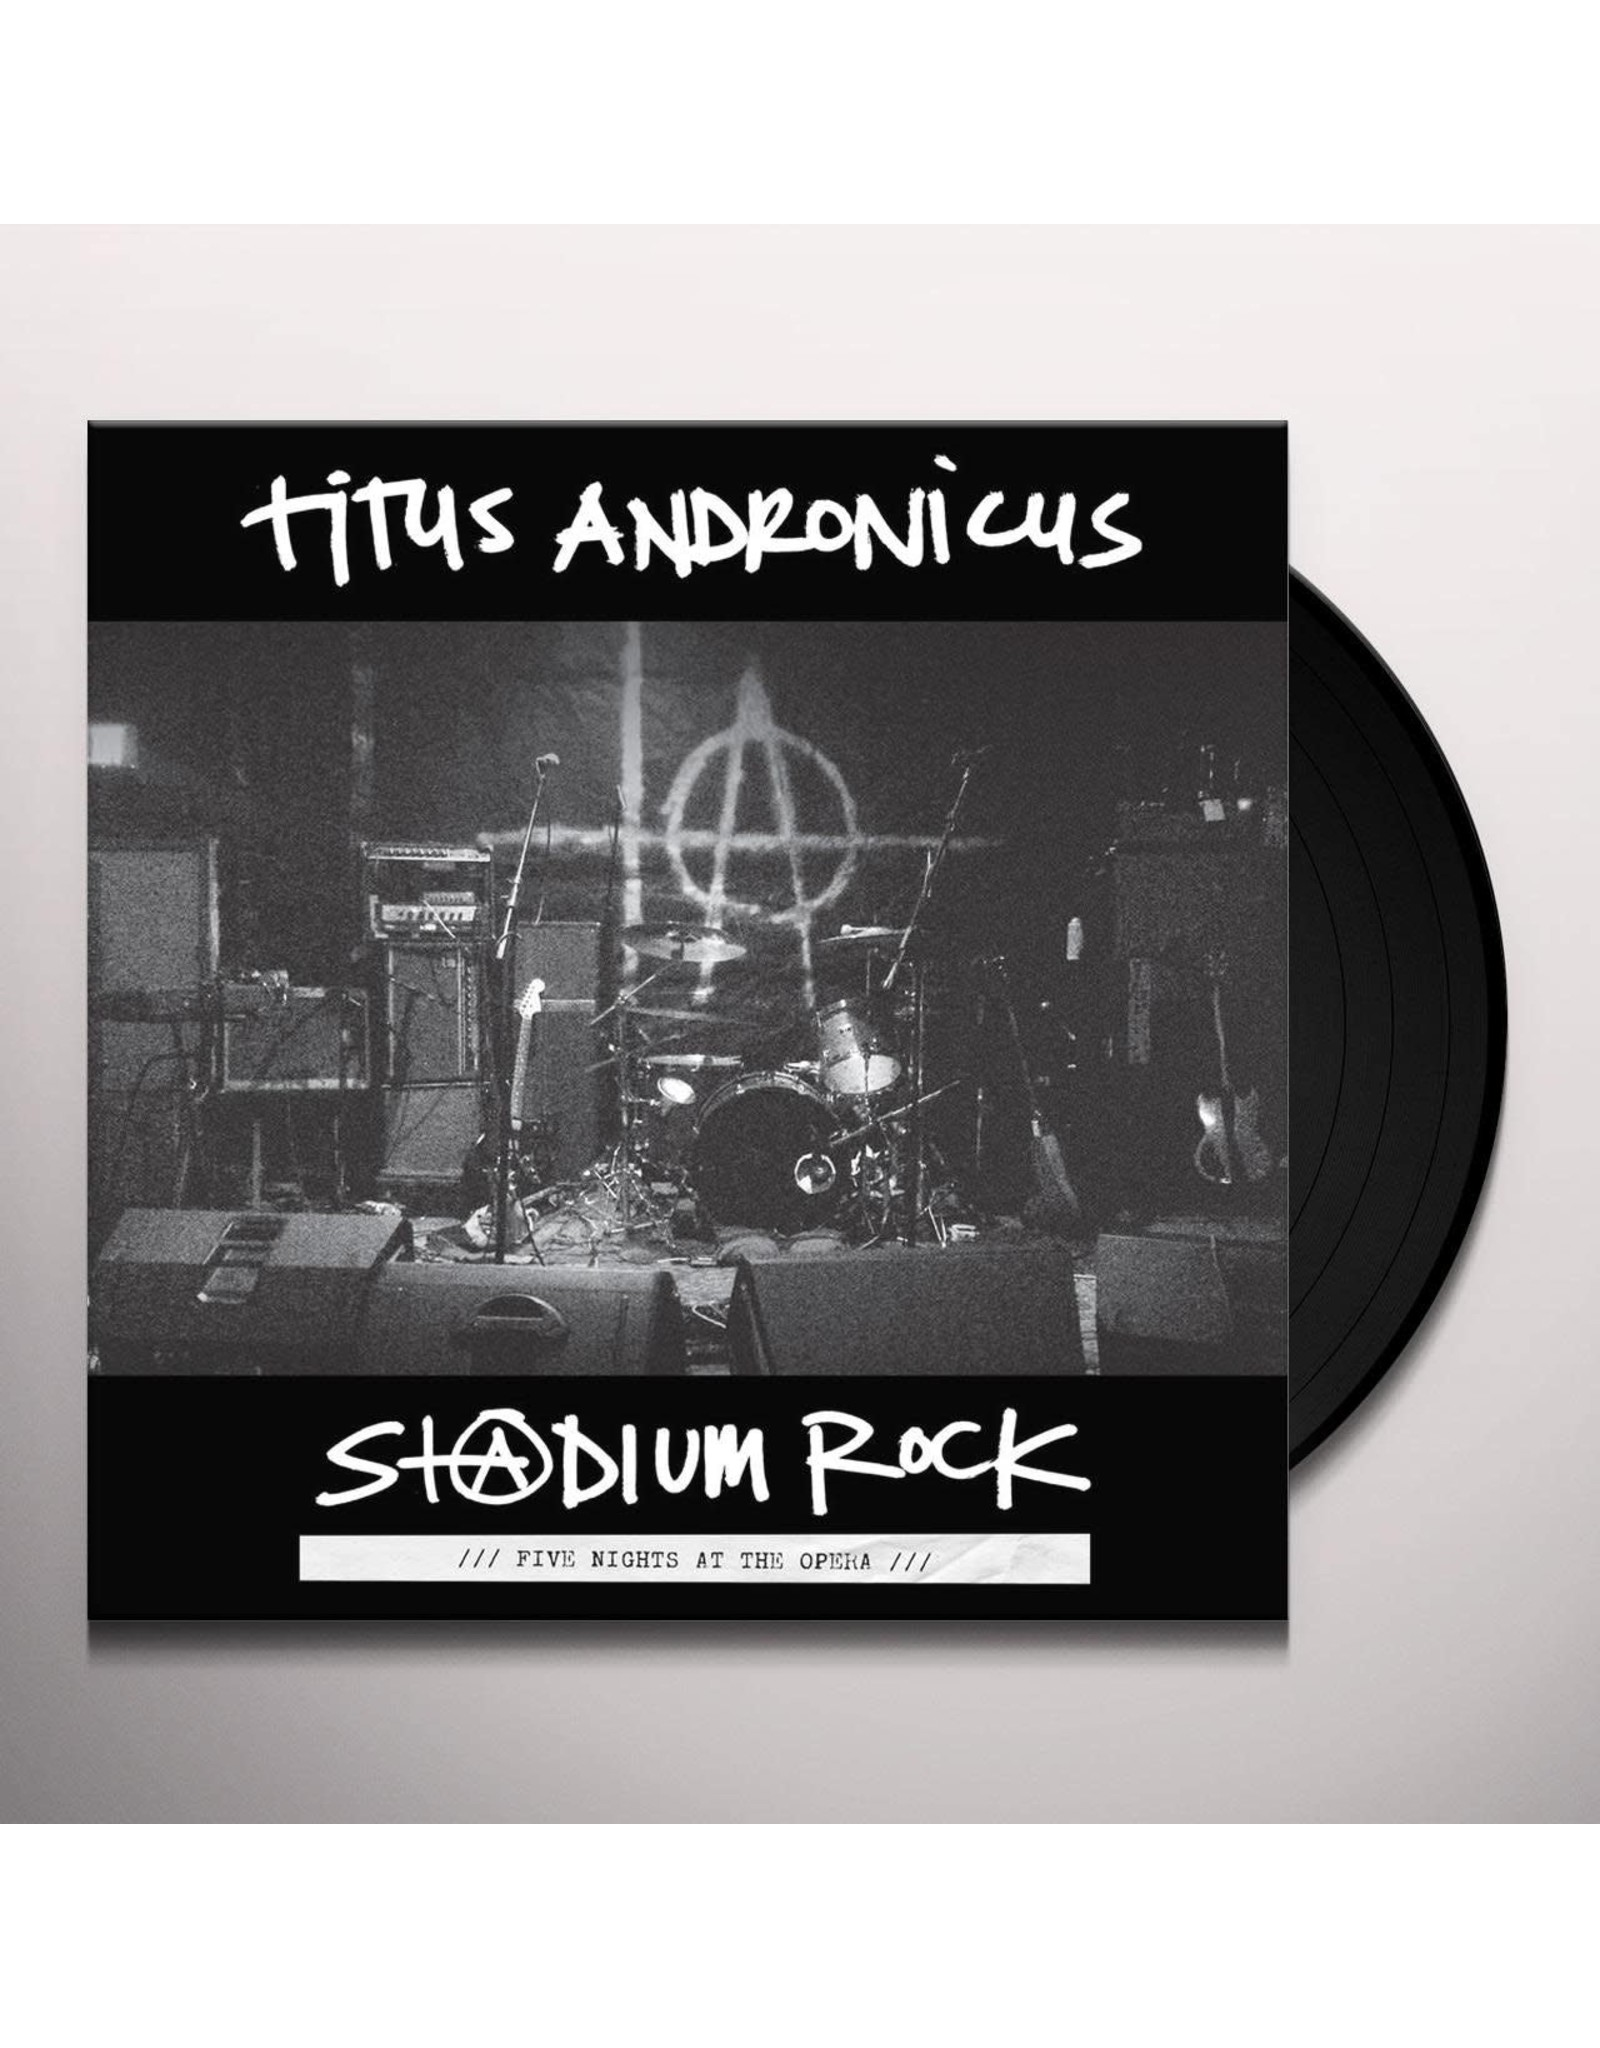 Titus Andronicus - Stadium Rock: Five Nights at the Opera LP